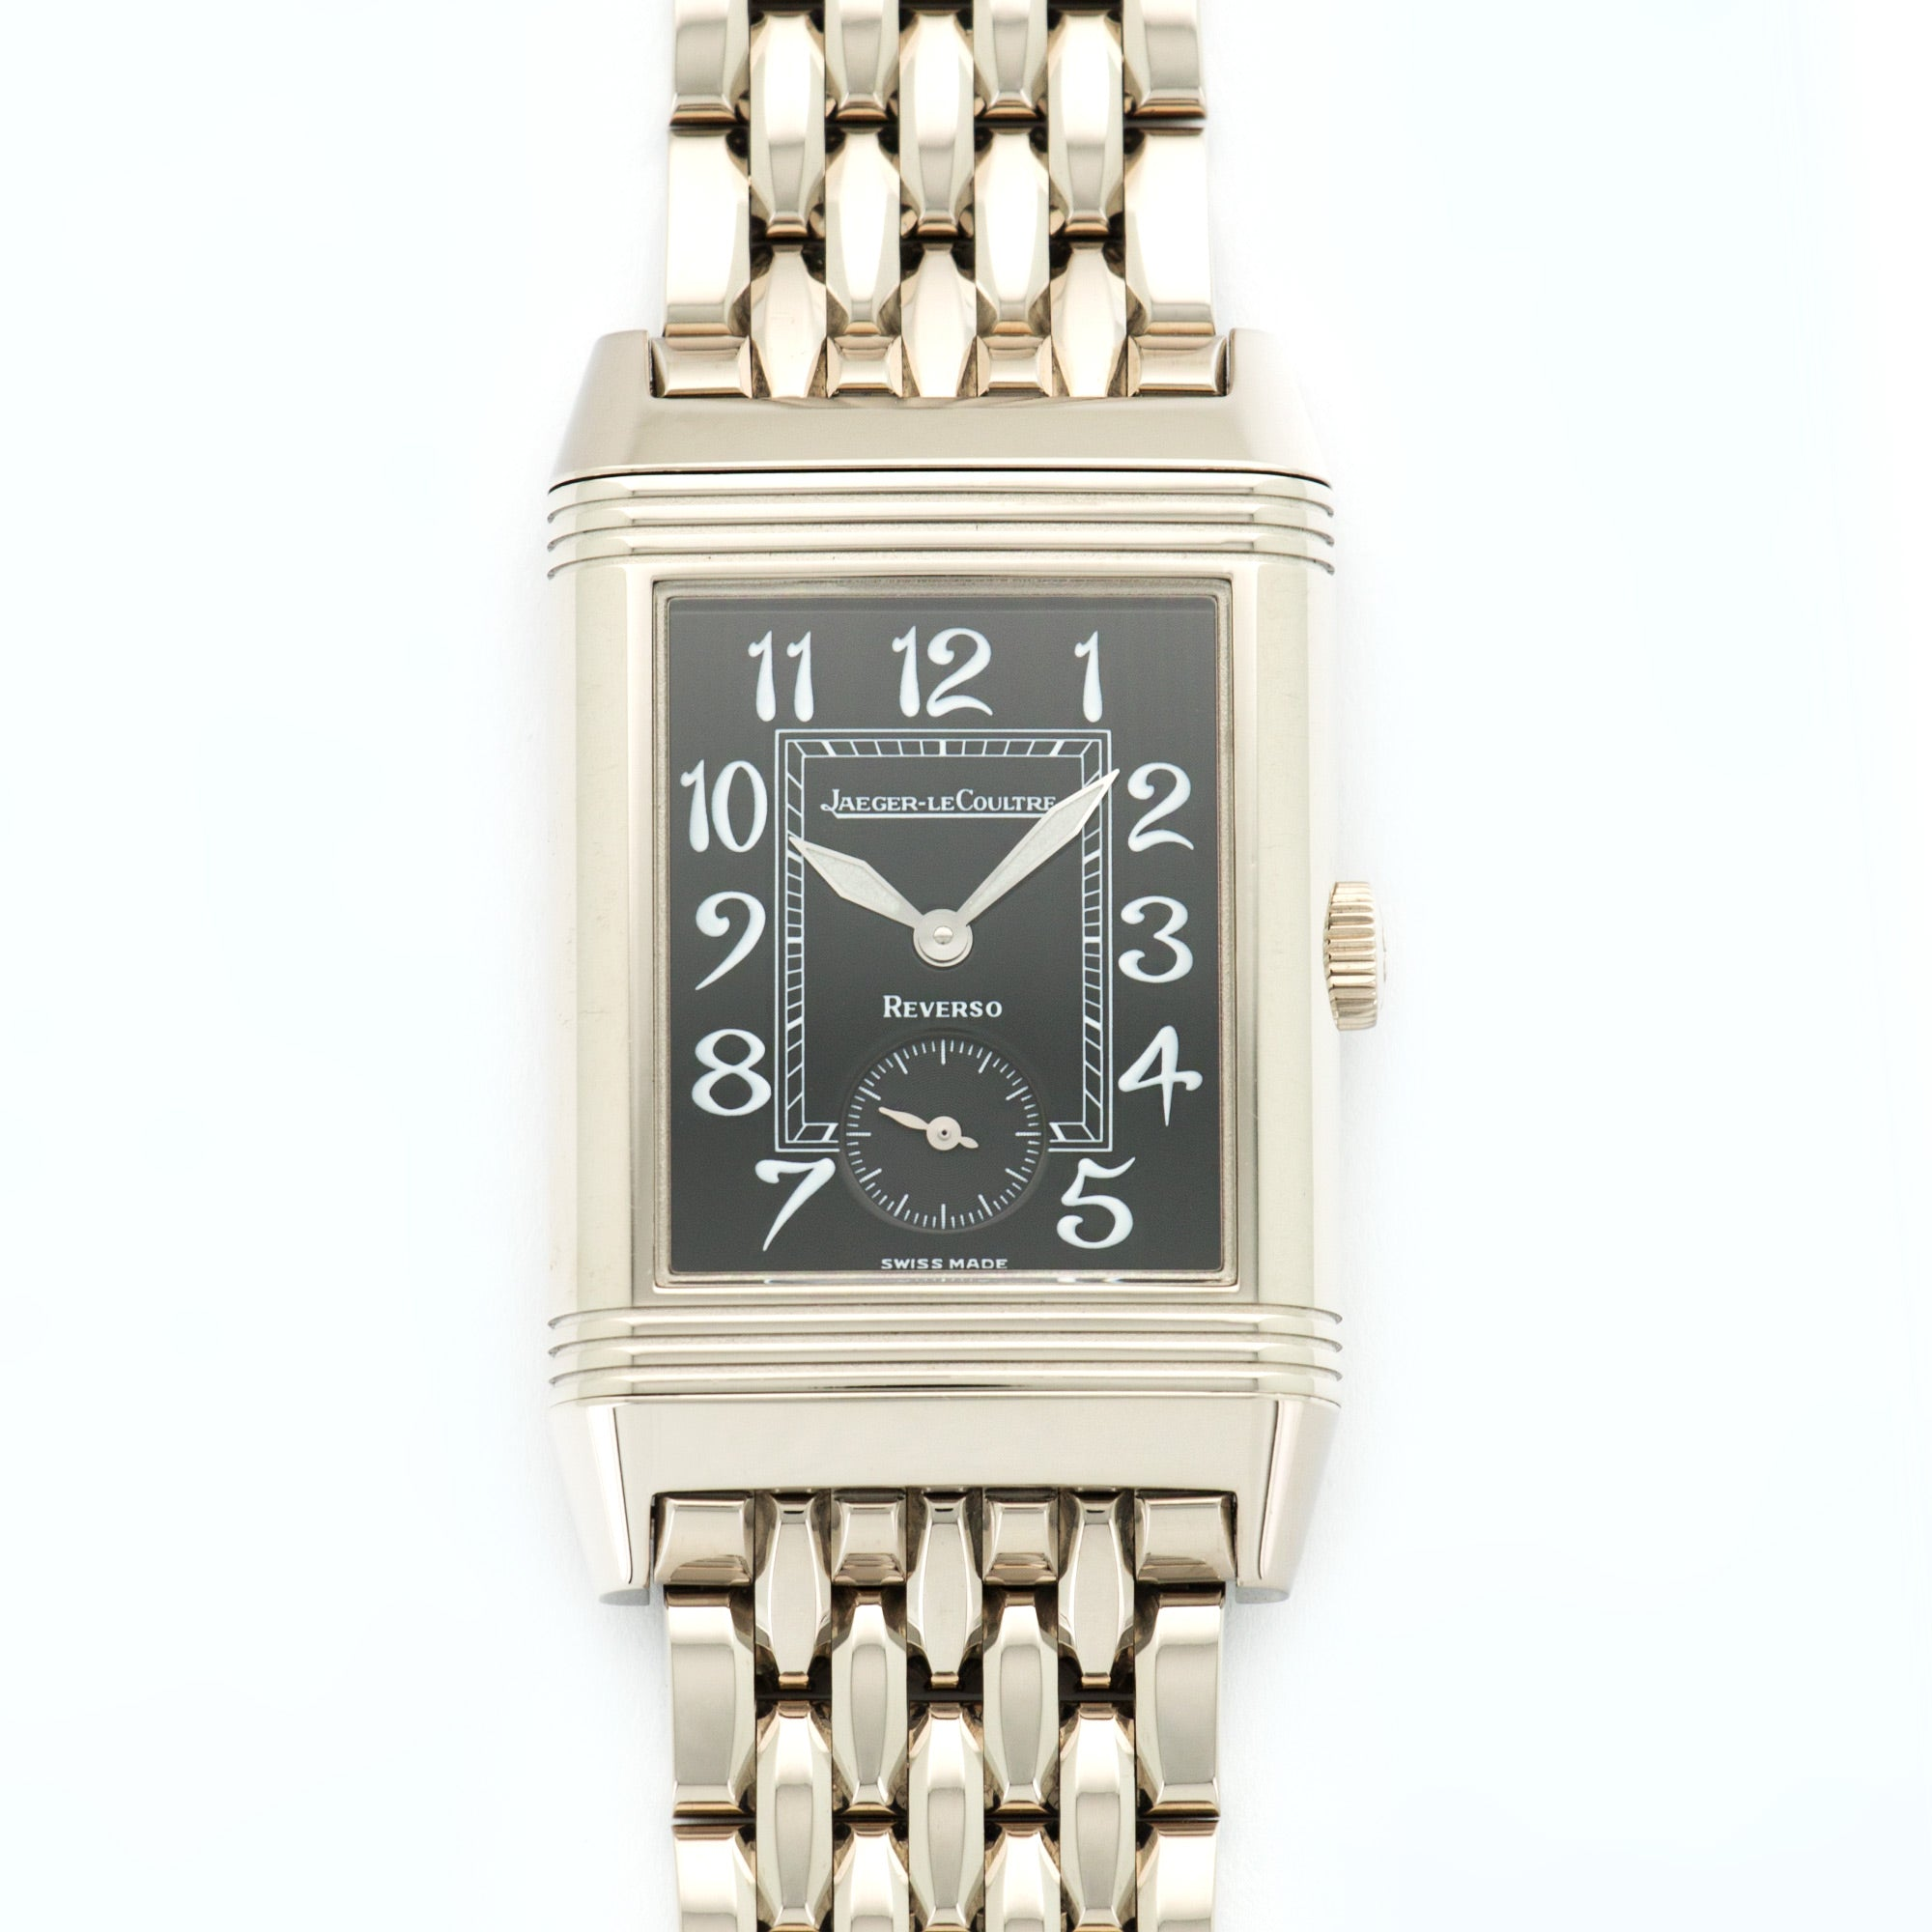 Jaeger LeCoultre Reverso QA270301 18k WG  Mint Gents 18k WG Black 26.5mm X 42mm Manual 2000s White Gold Bracelet Box